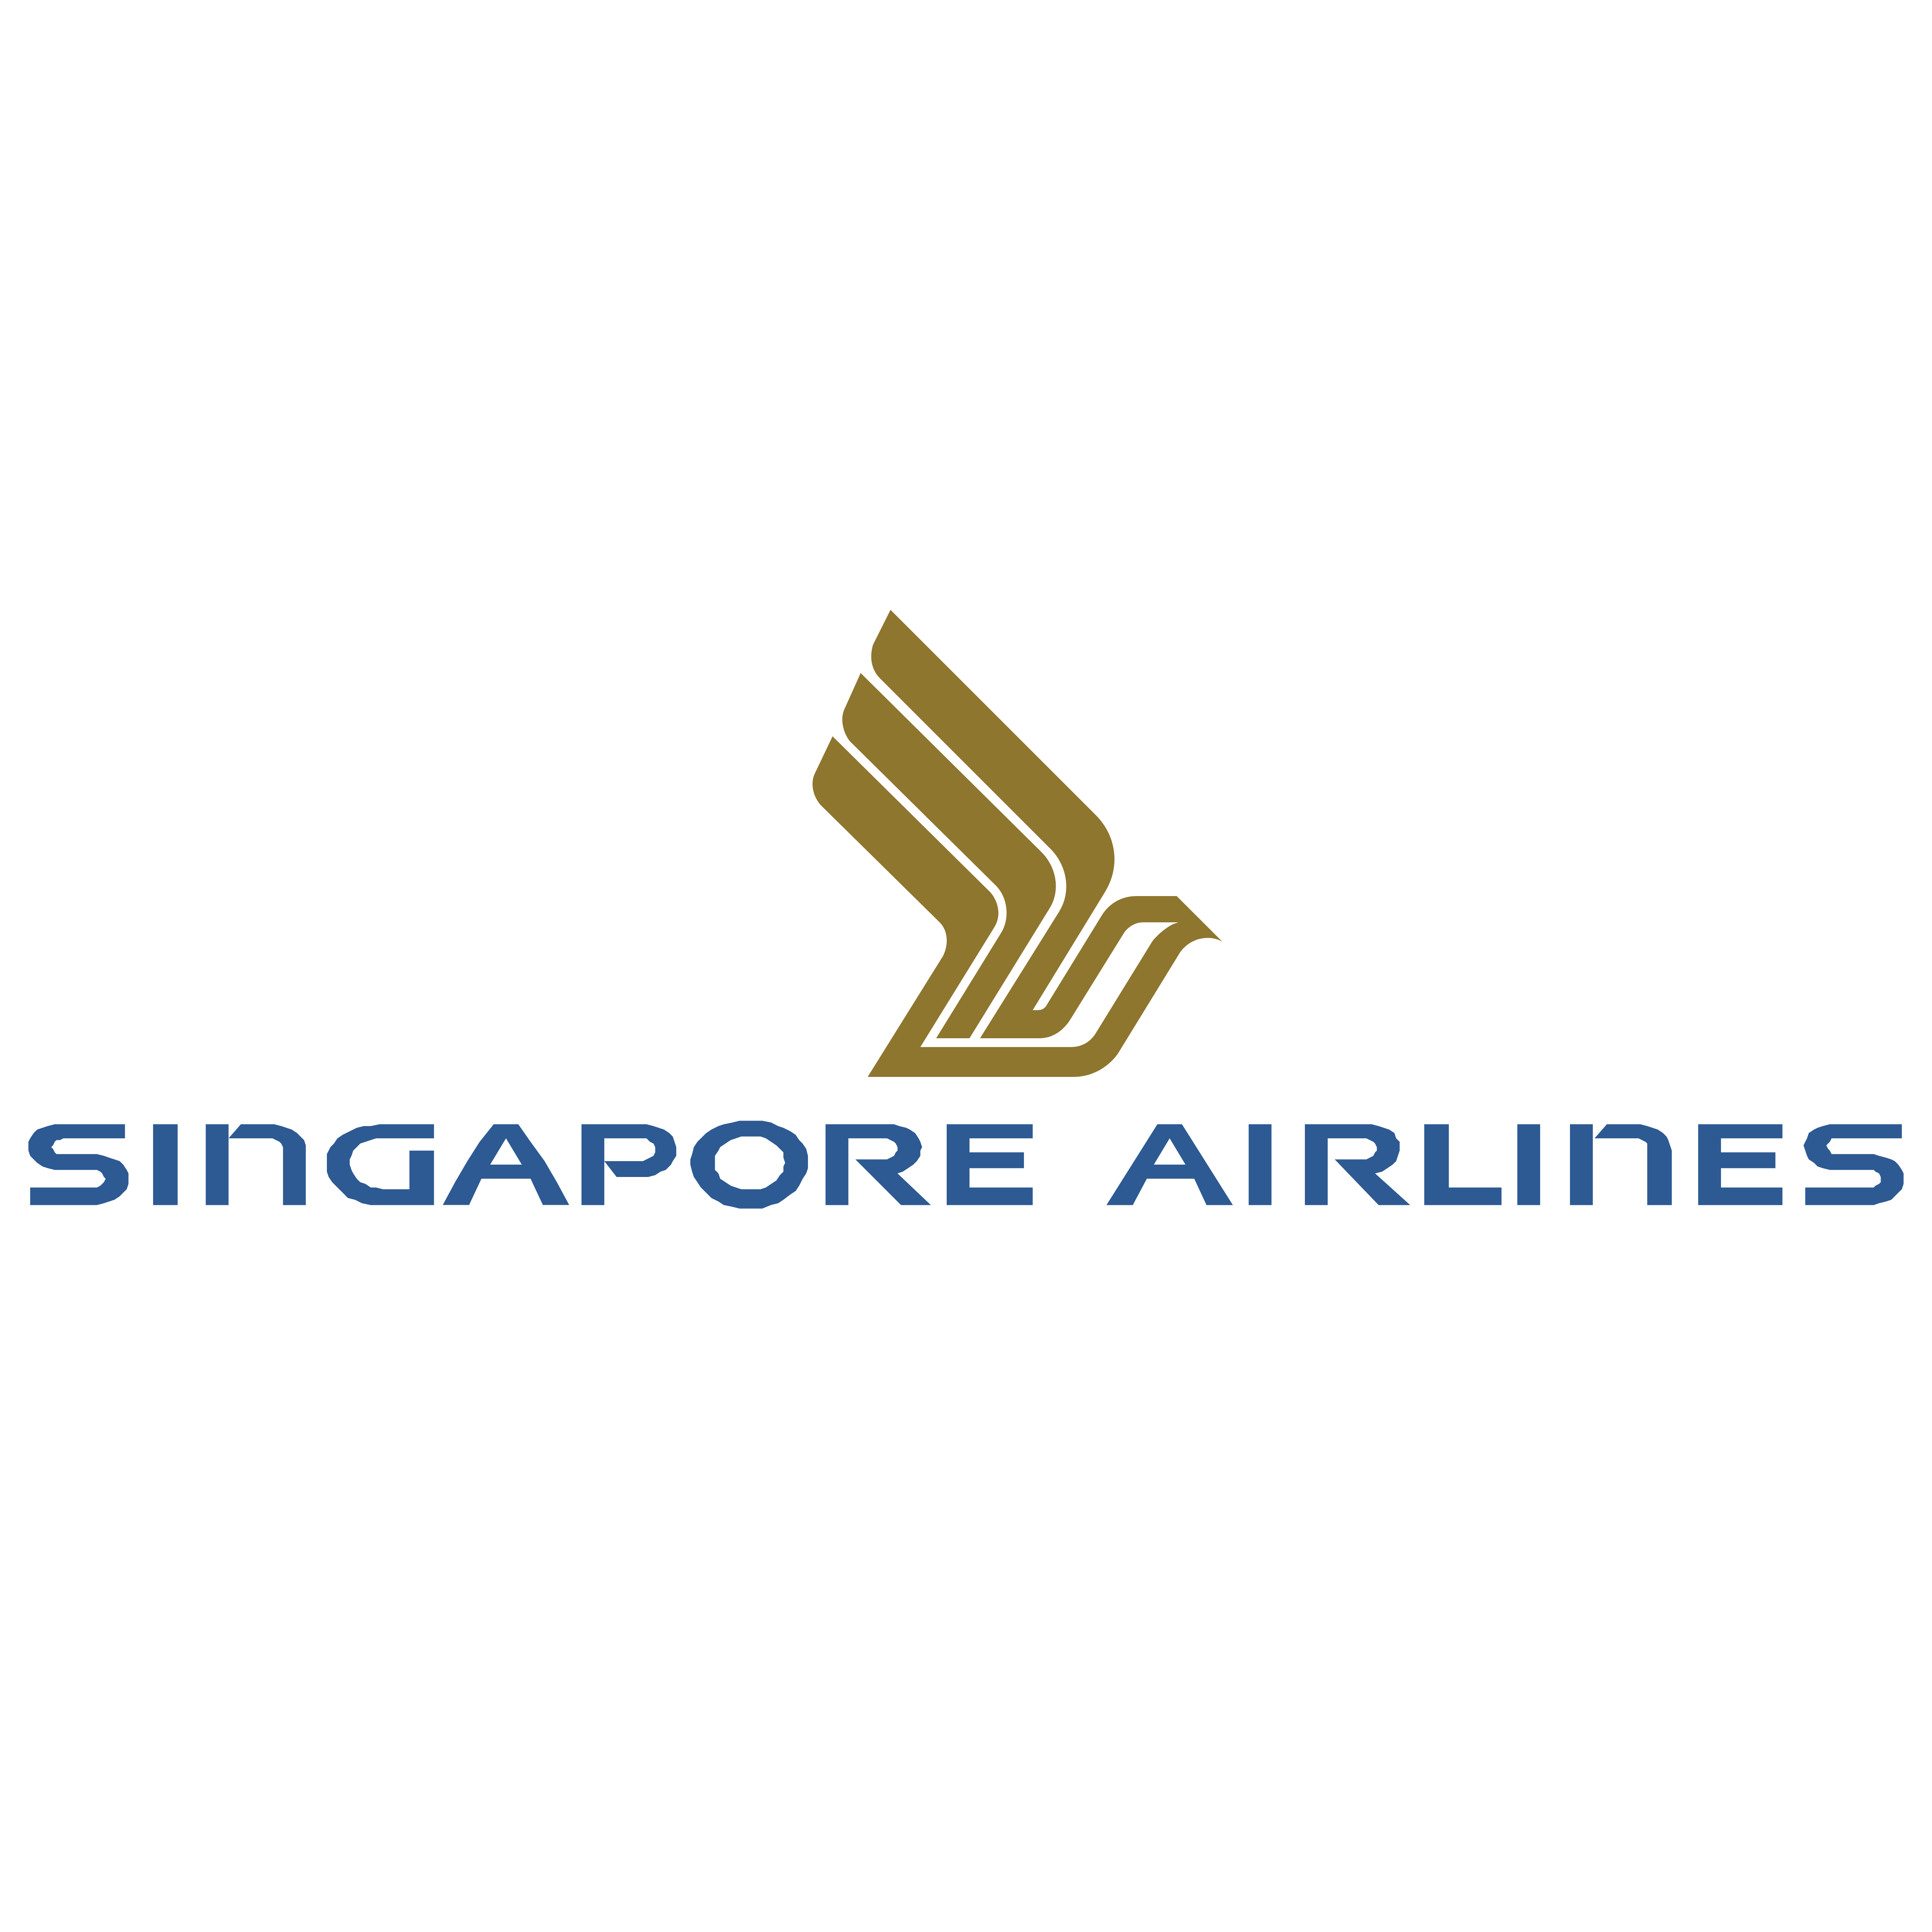 Singapore Airlines – Logos Download - Singapore Airlines Logo PNG